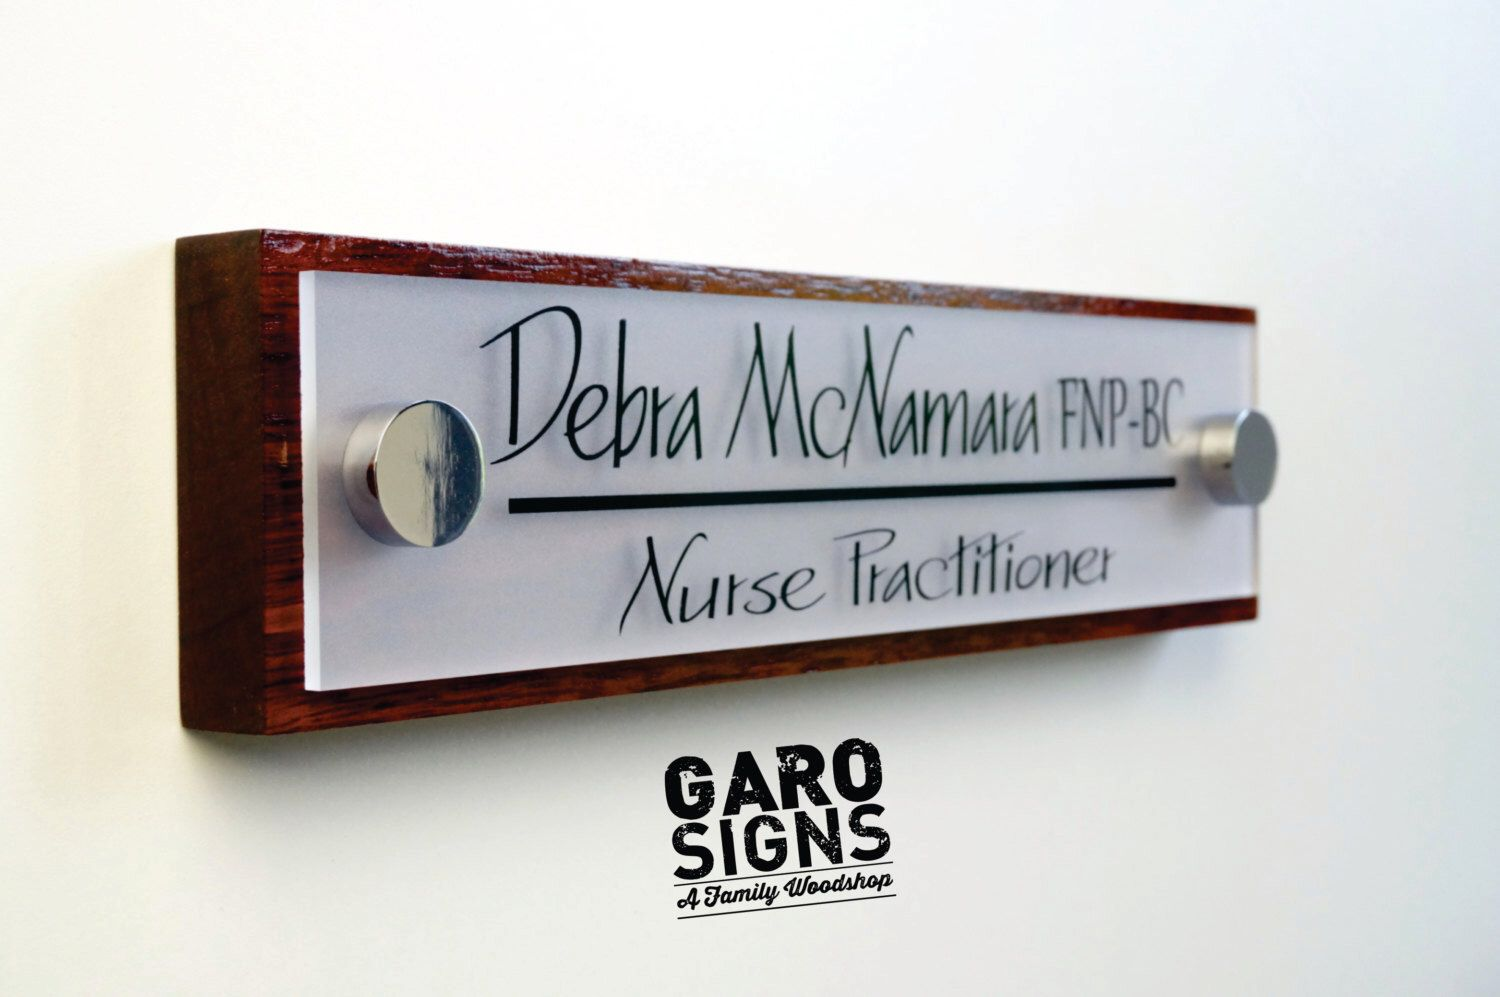 Office door sign professional personalized wood sign gift 10 x 2 5 by garosigns on etsy